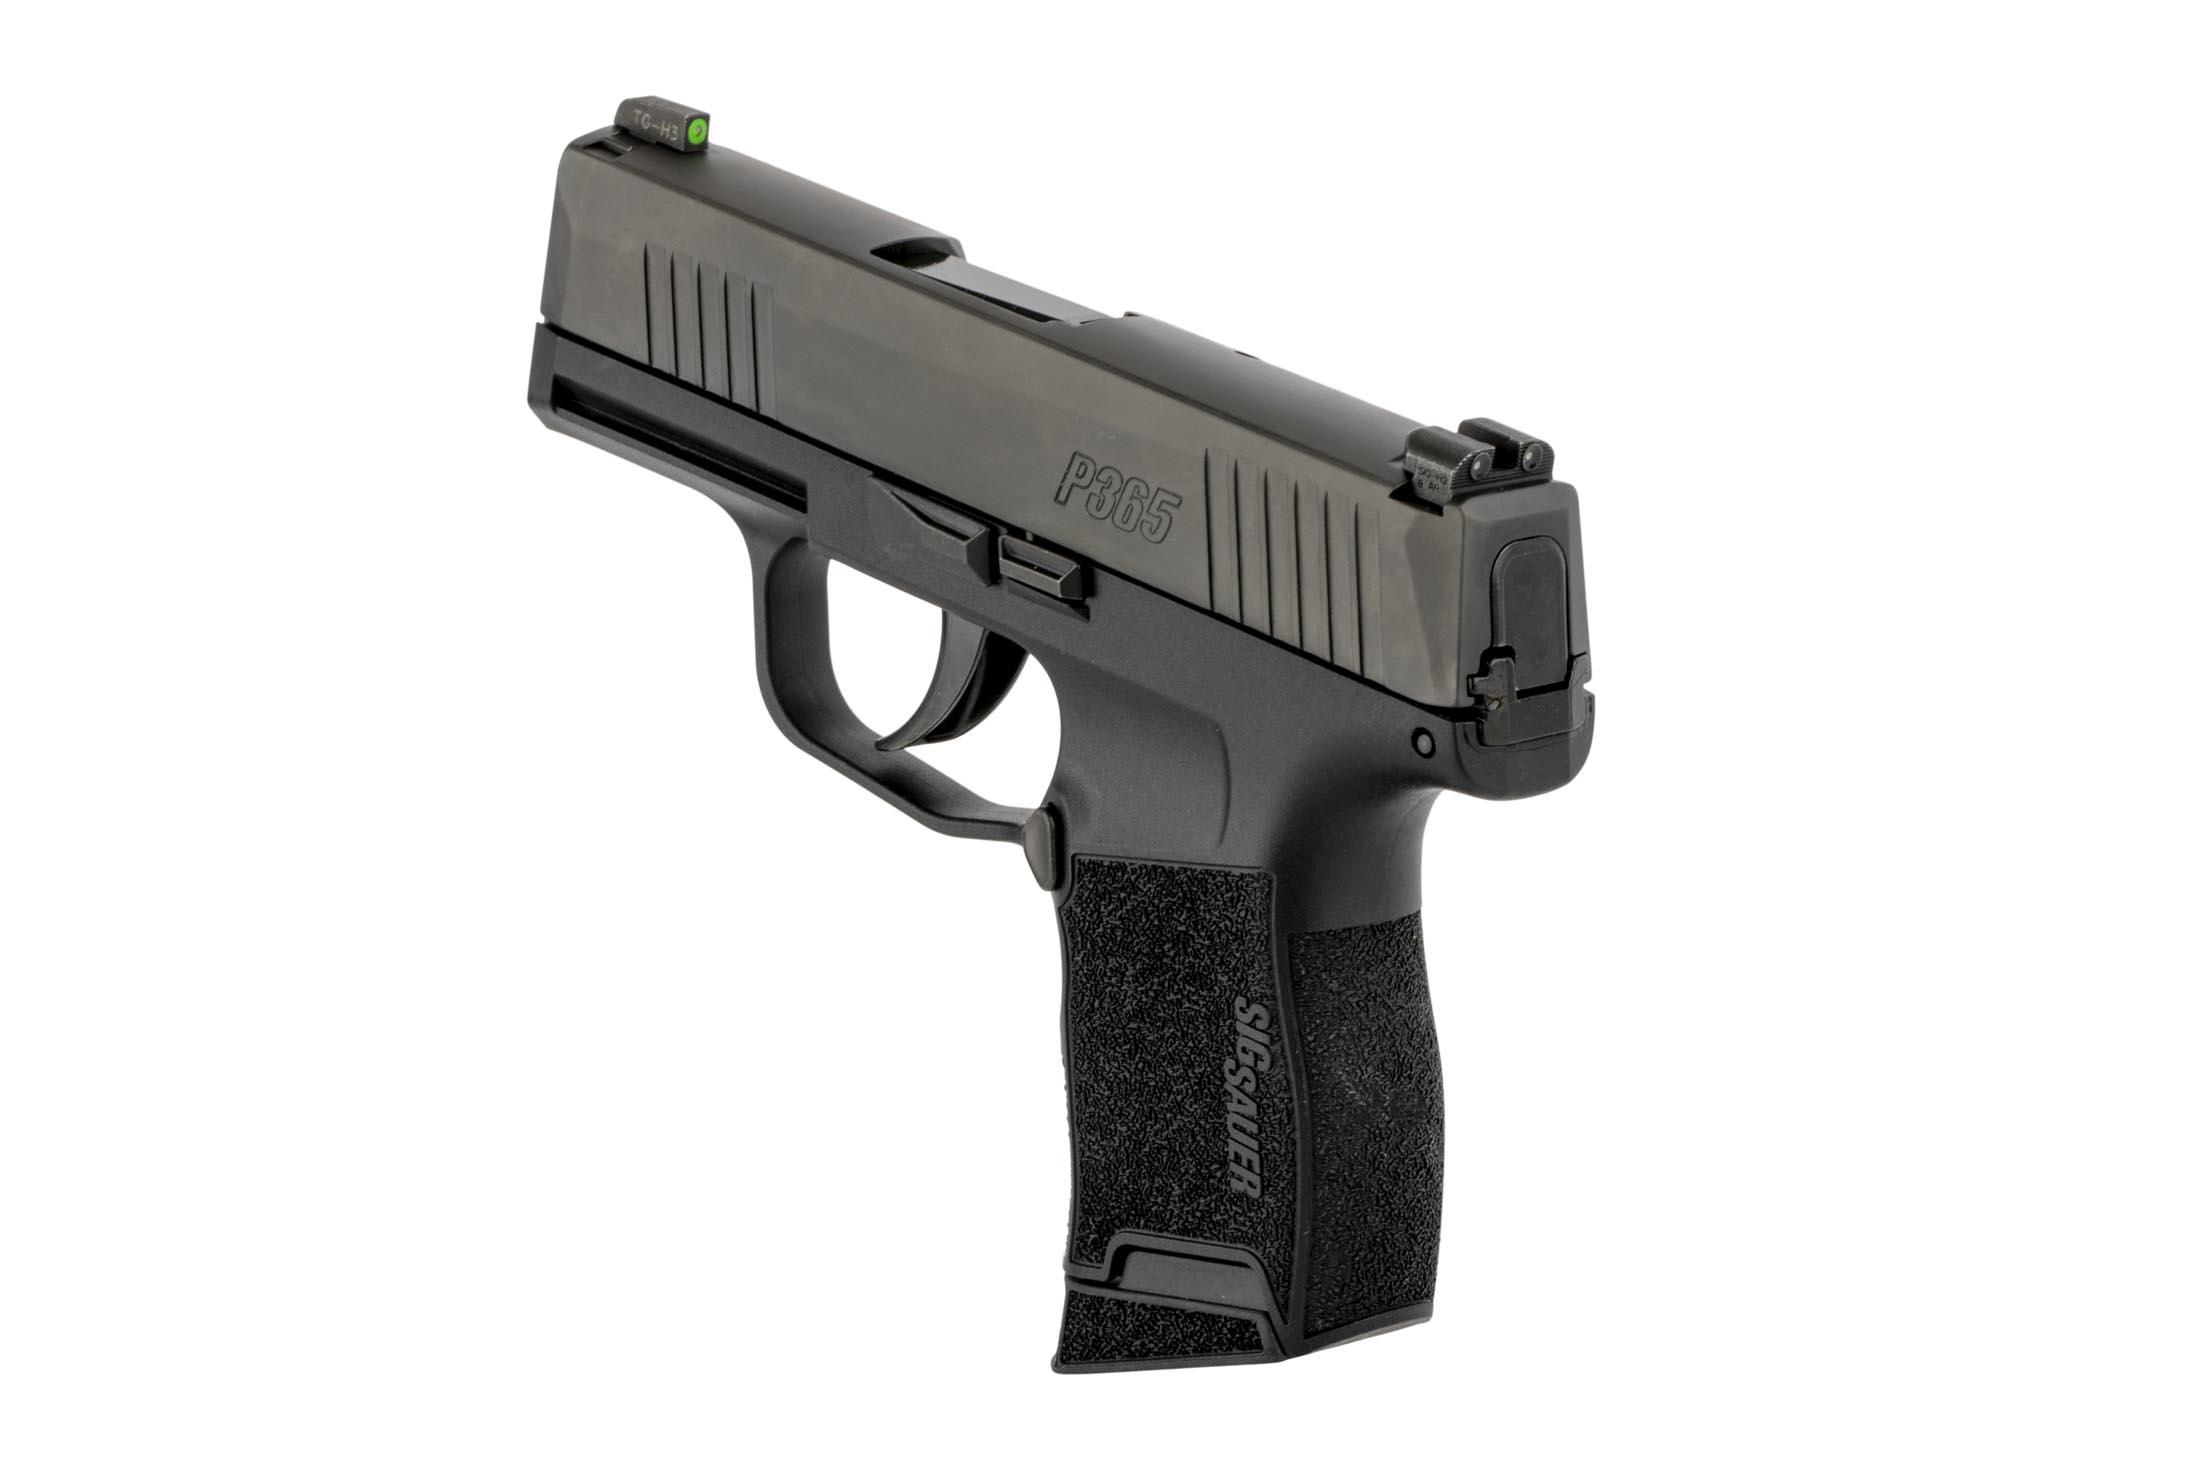 SIG Sauer's P365 slim compact handgun holds 10 rounds of 9x19mm and features hi-vis green front sight